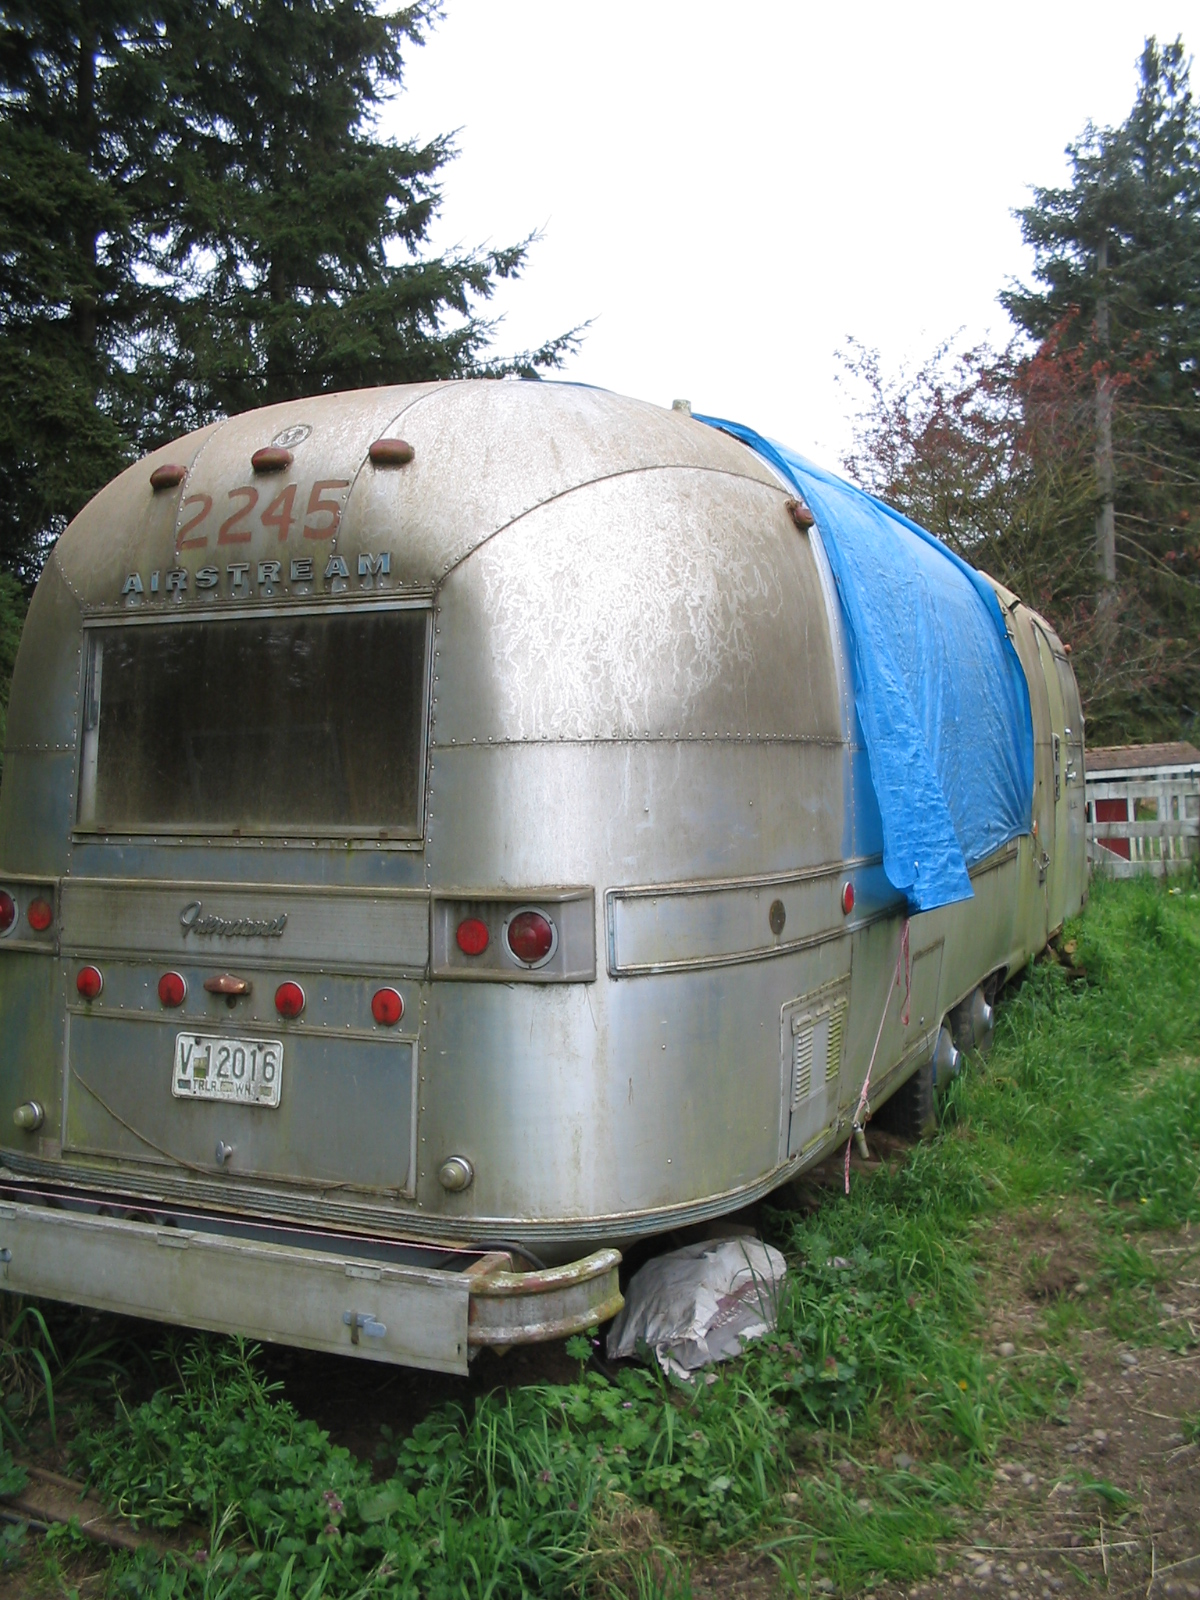 Click image for larger version  Name:30 1986 airstream.1.JPG Views:64 Size:920.9 KB ID:41469